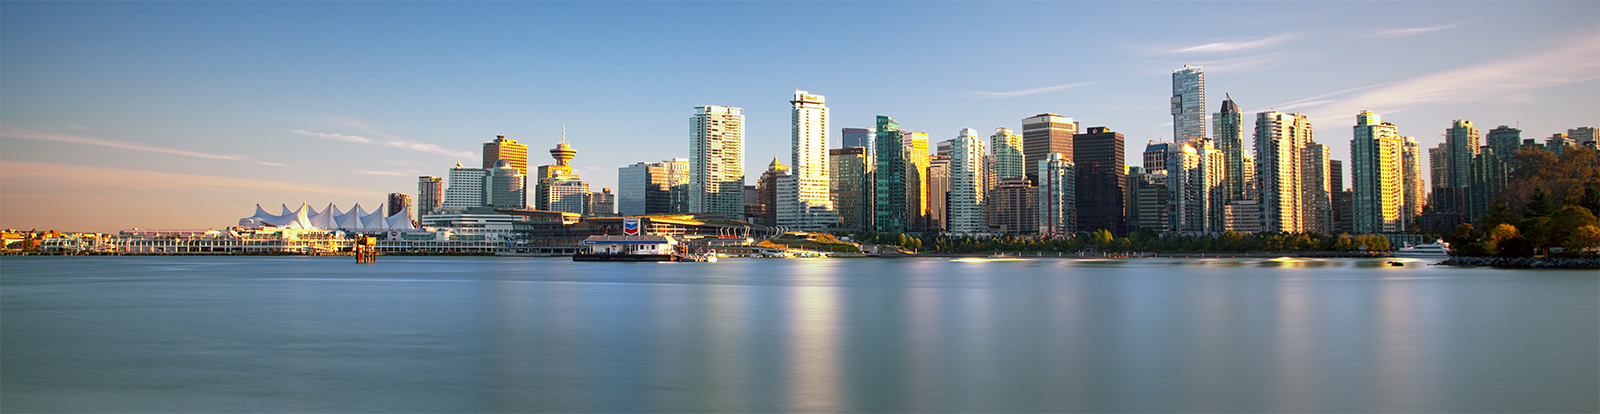 VANCOUVER - DOWNTOWN AND WATERFRONT